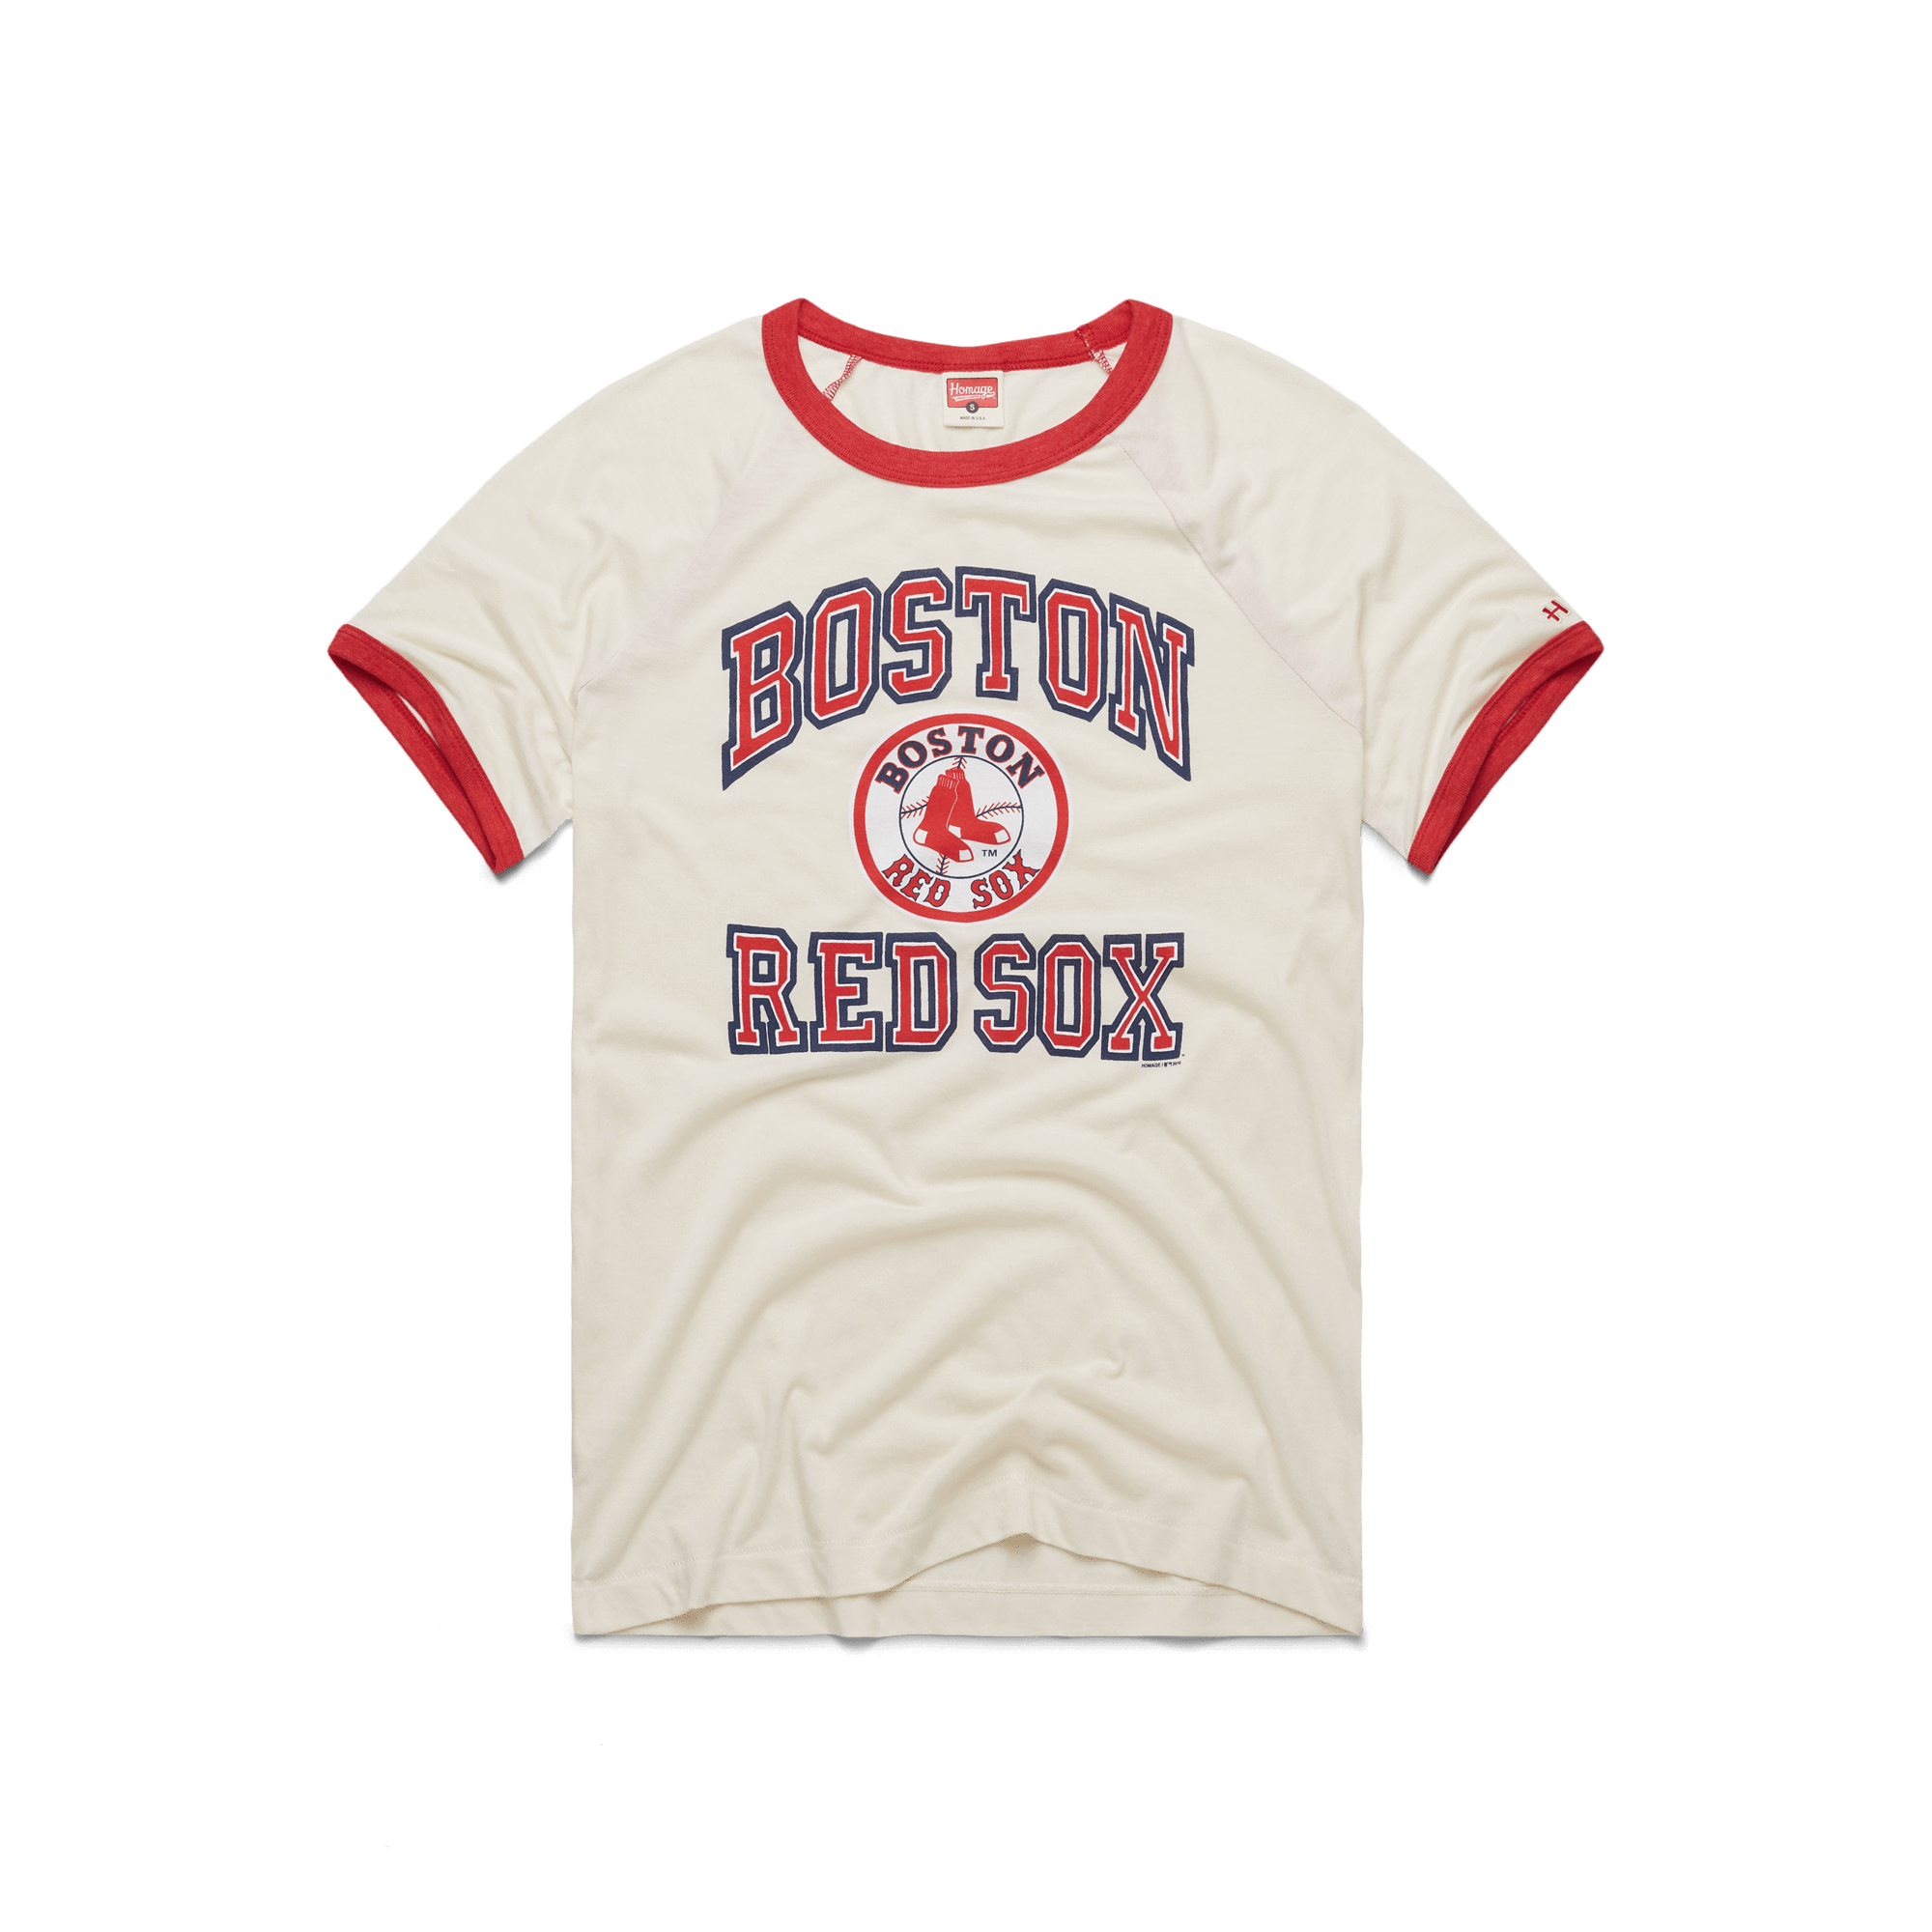 abb3914d7 Cool Red Sox T Shirts - Nils Stucki Kieferorthopäde